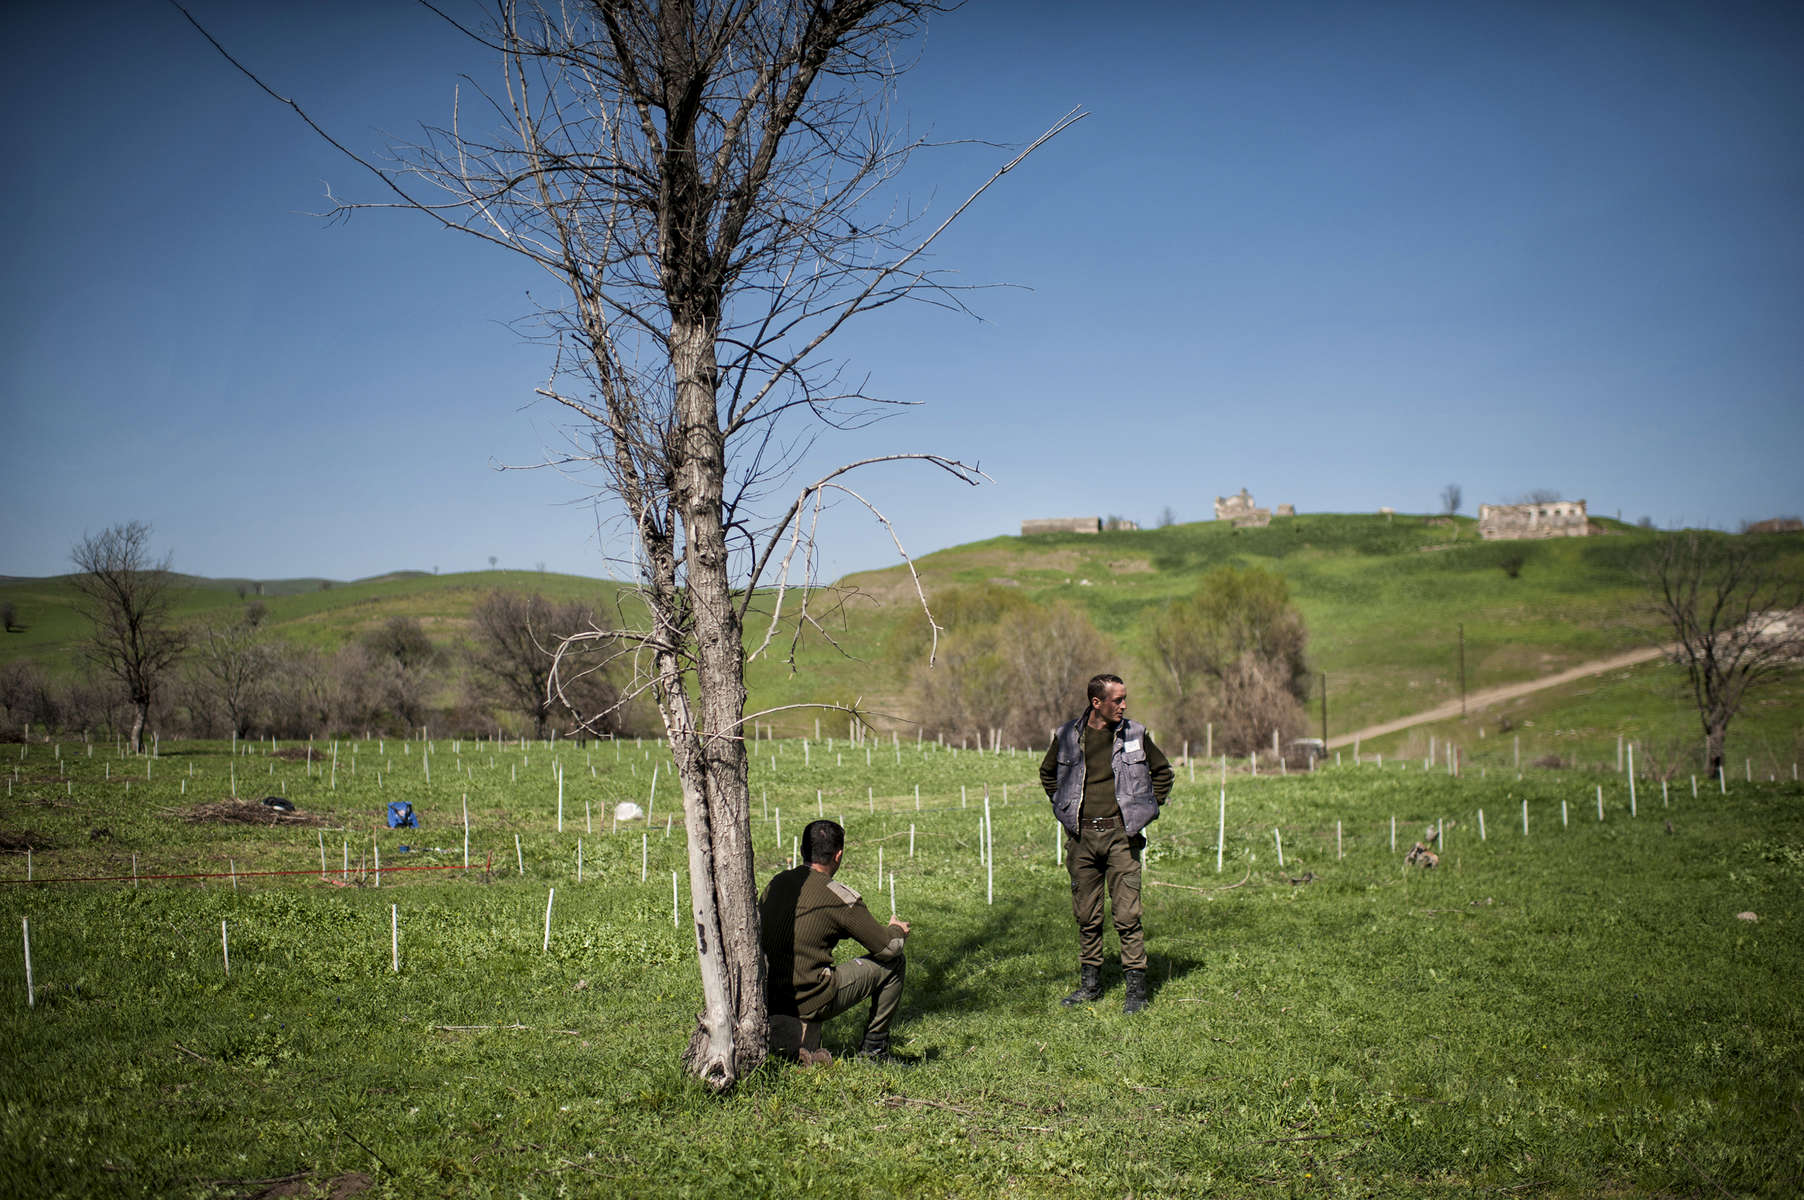 21 year-old deminer Aramayis Agopov chats with his brother Pavel Agopov, 27 in the Norashen anti-tank minefield.  Both brothers work as deminers for HALO trust, and Pavel is one of the best deminers HALO employs.NOTE: AGES SHOULD BE DOUBLE CHECKED - I HAVE HEARD 2 DIFFERENT AGES FOR BOTH BROTHERS. ALSO WE HAVE LONG INTERVIEWS WITH BOTH.